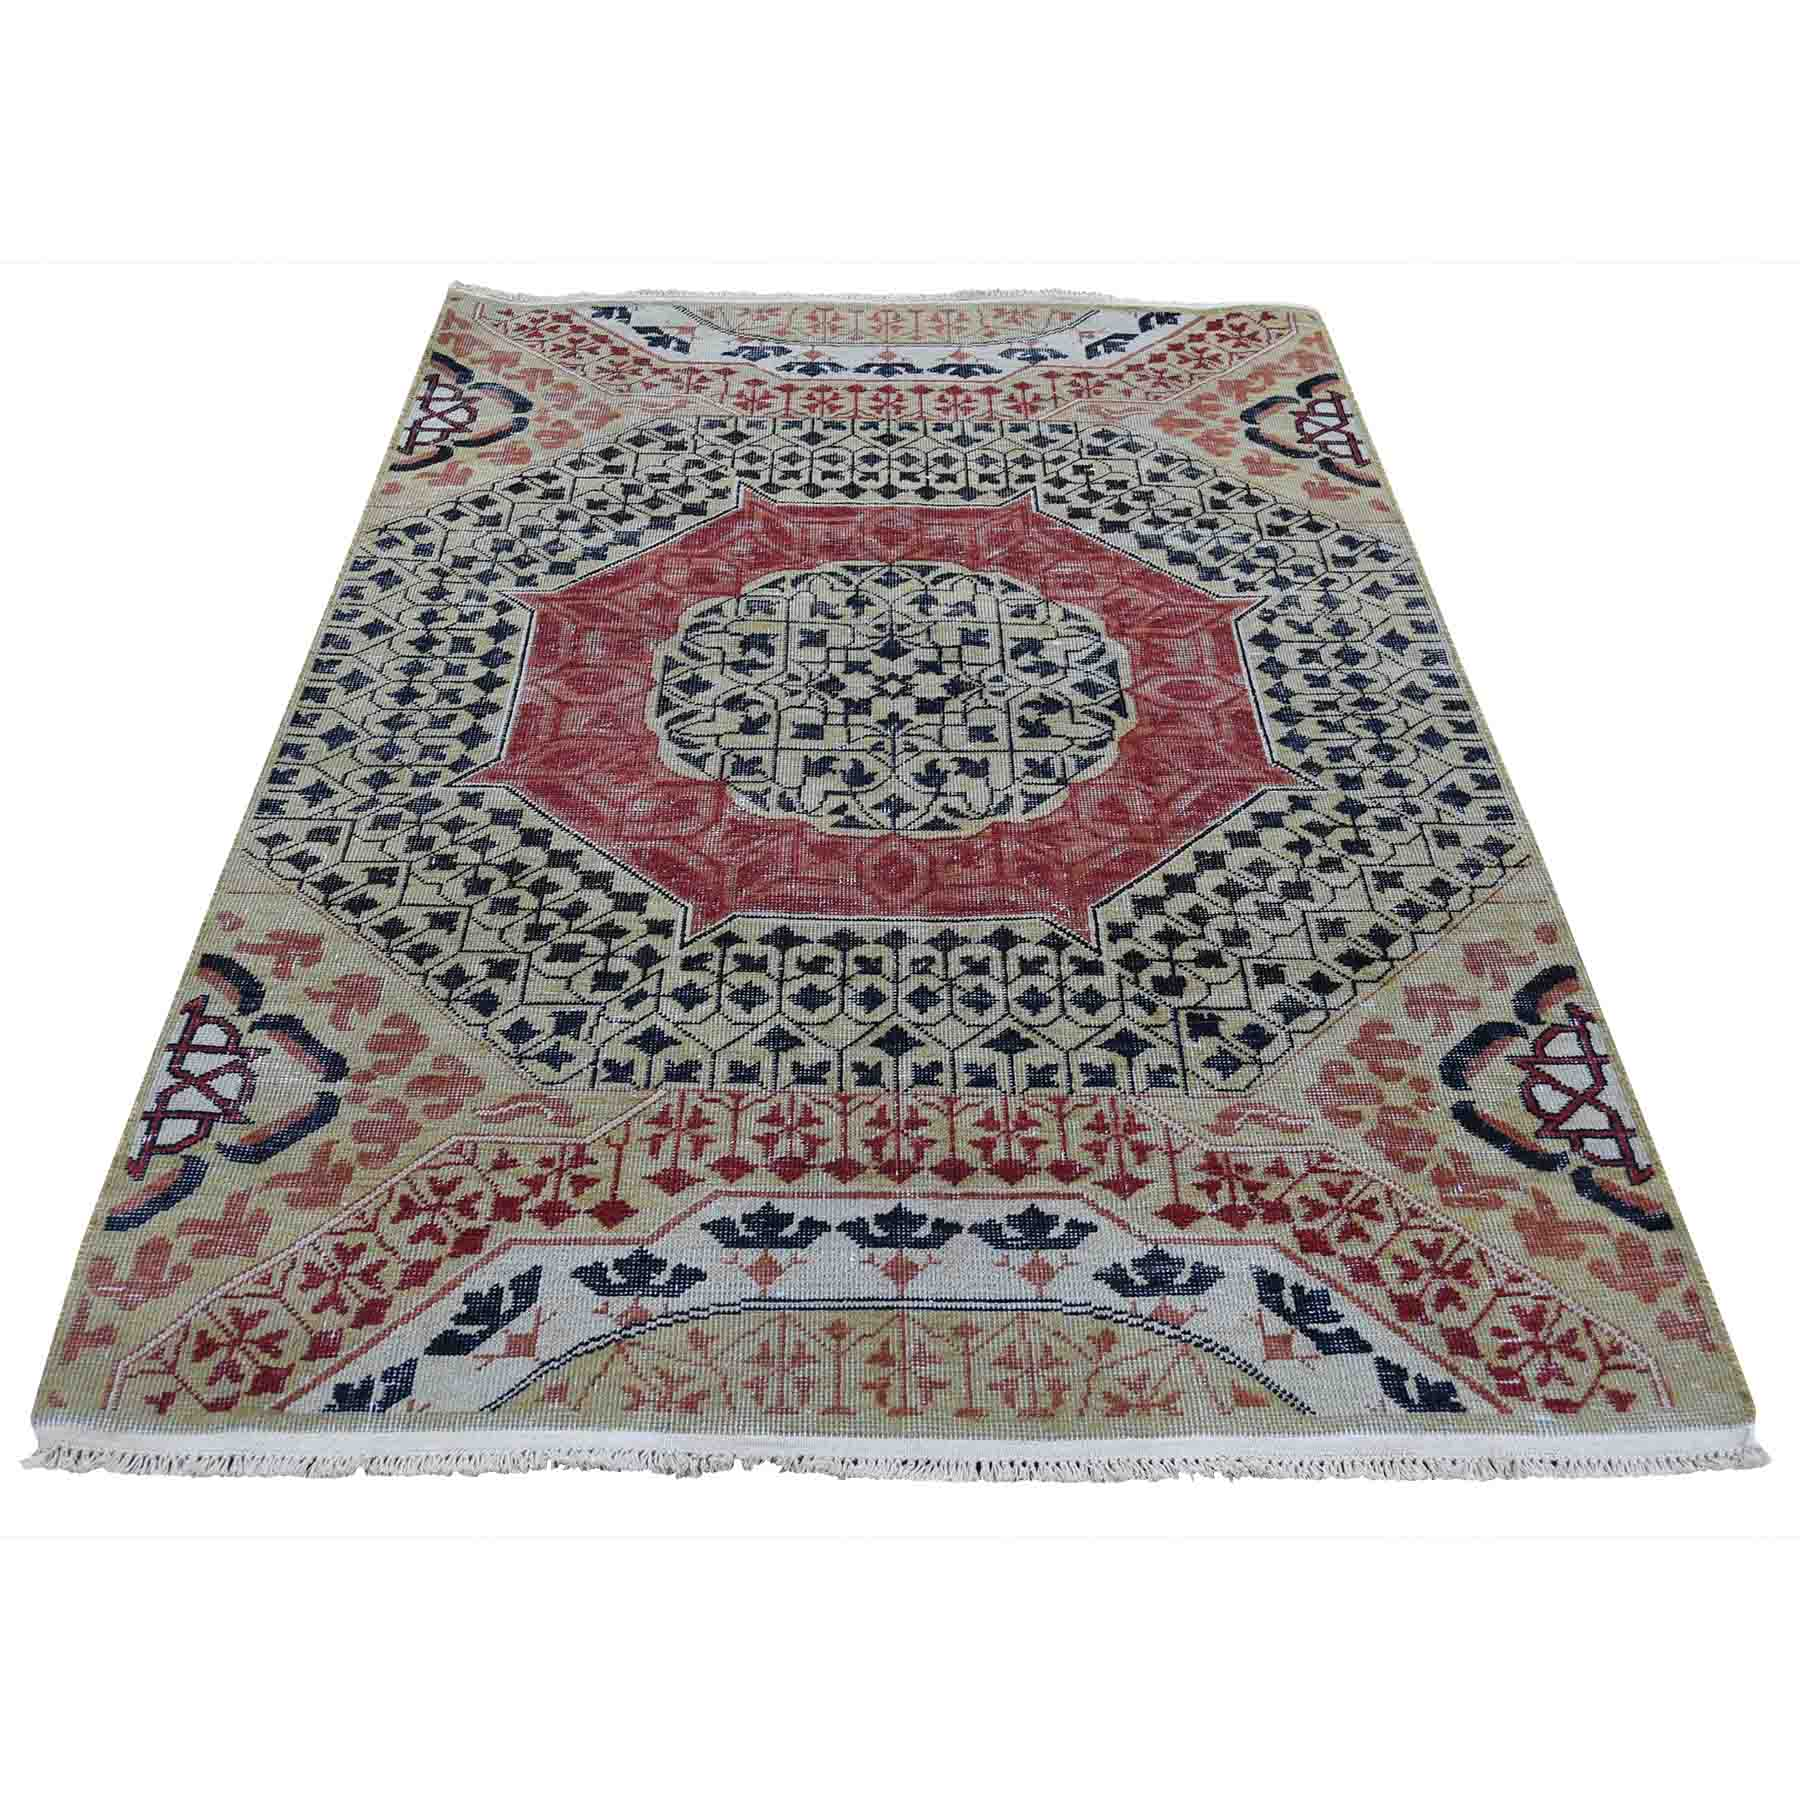 4'X6' Vintage Look Mamluk Zero Pile Shaved Low Worn Wool Rug moadadc6